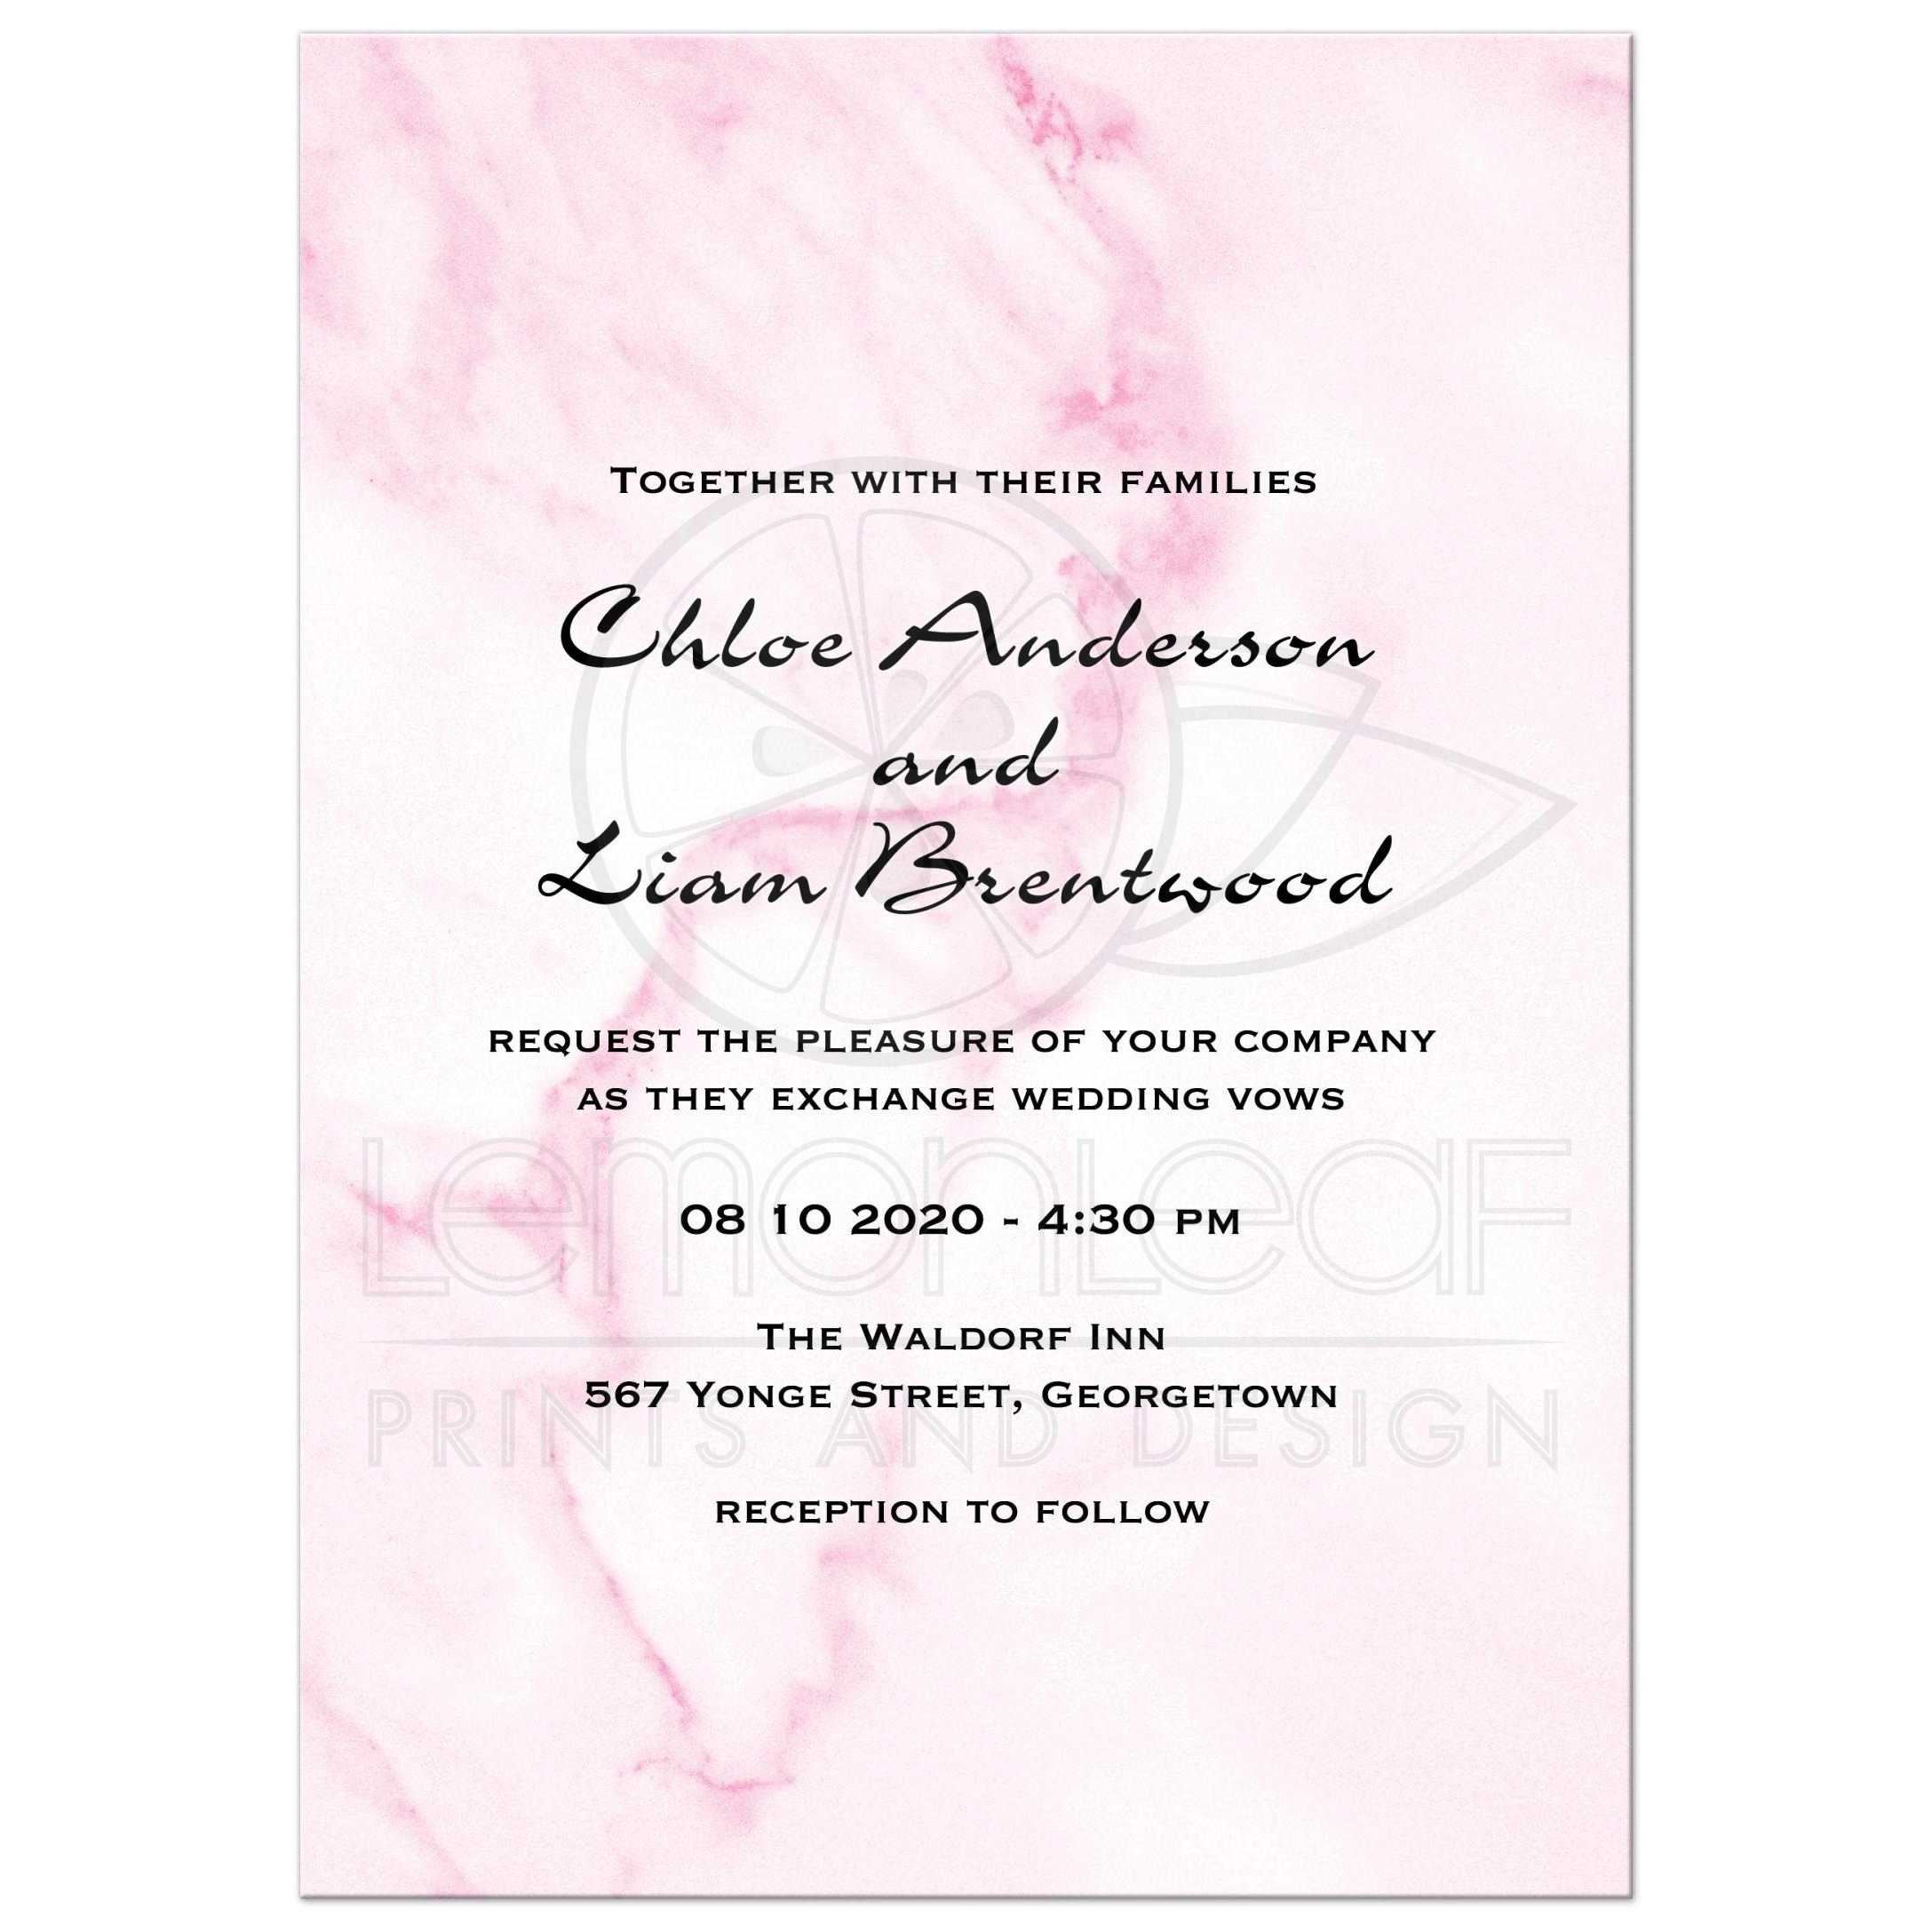 modern bat home designs html with Wedding Invitation Pink Marble on Wedding Invitation Pink Marble together with Perfect Cool Tattoo Ideas as well Bunco Party Invitations additionally Search furthermore 3 Star Hotel Room Interior Design By.